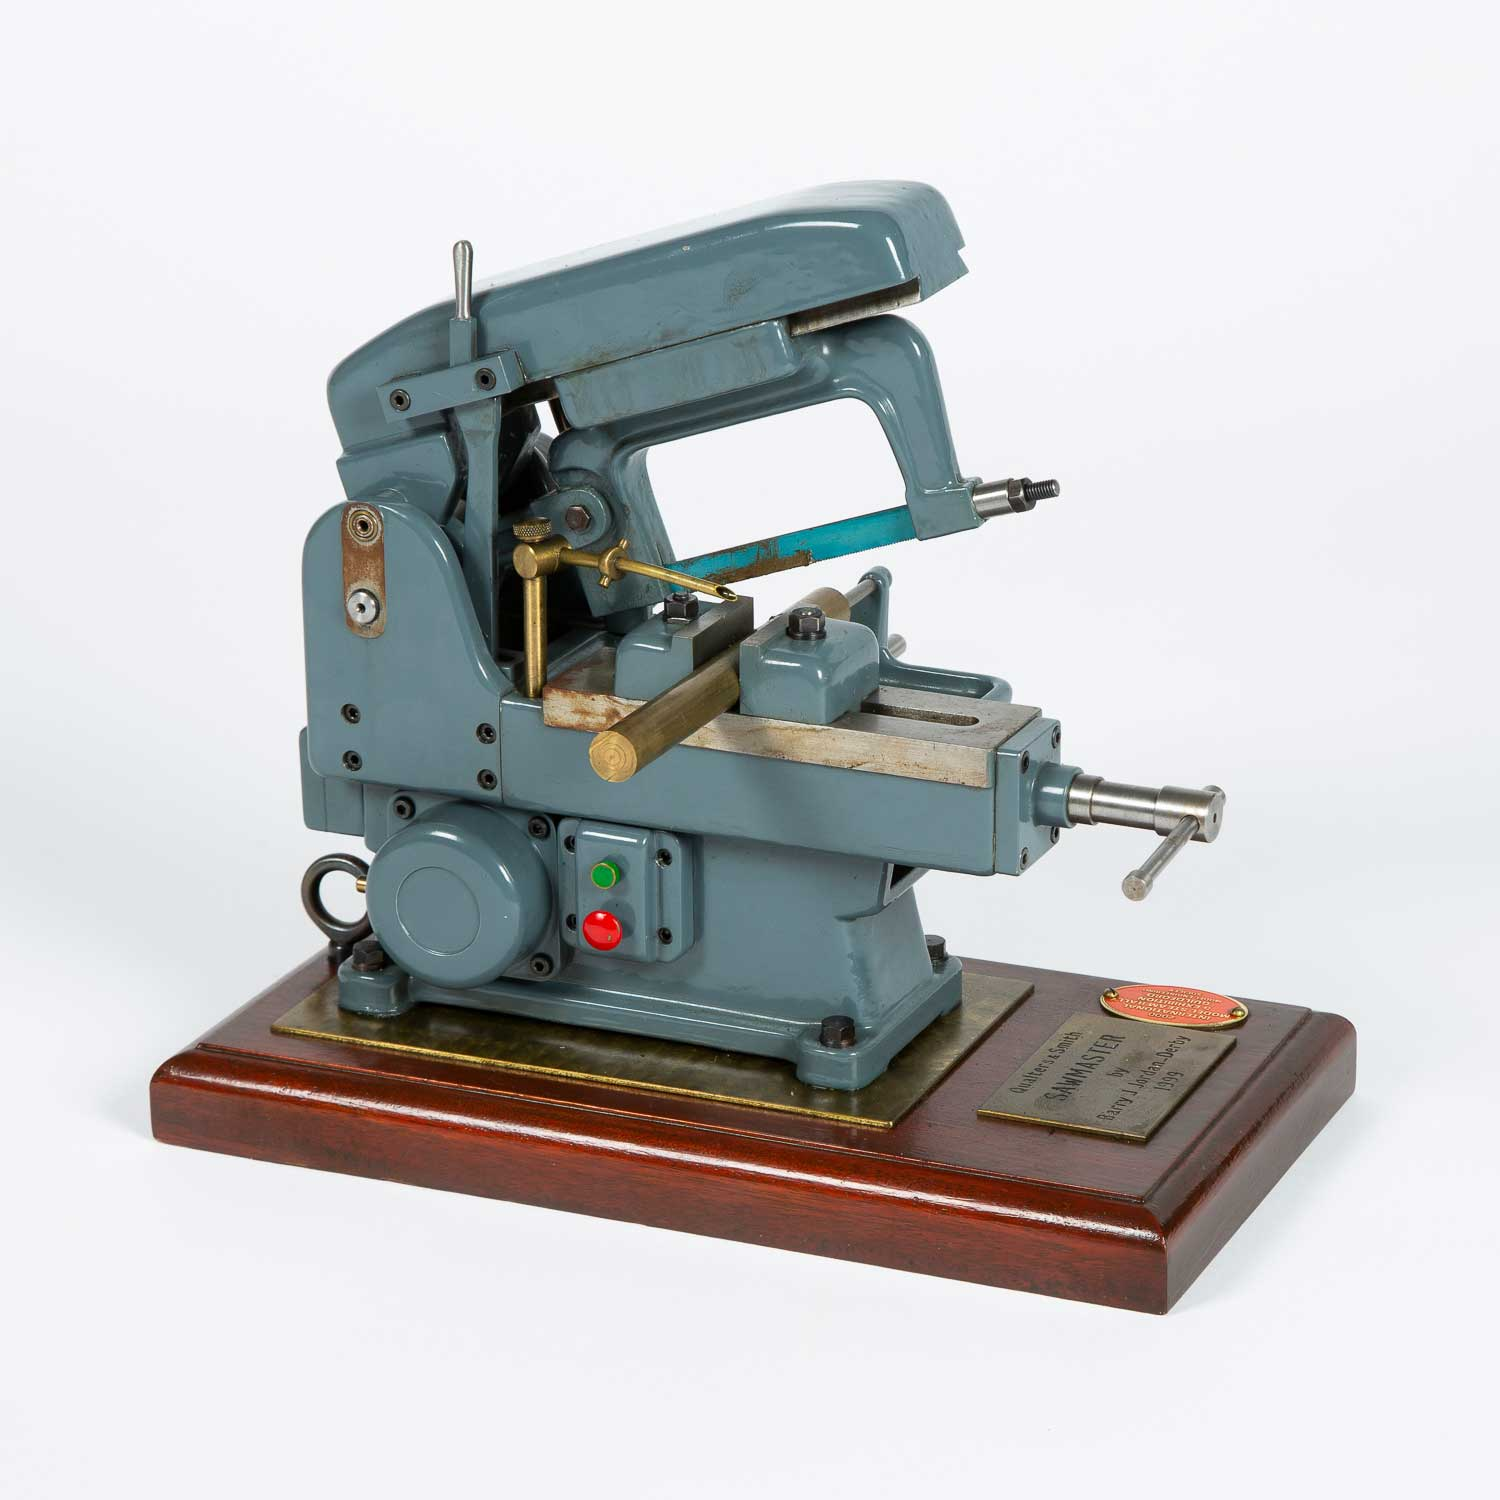 1/5th scale Qualters & Smith saw